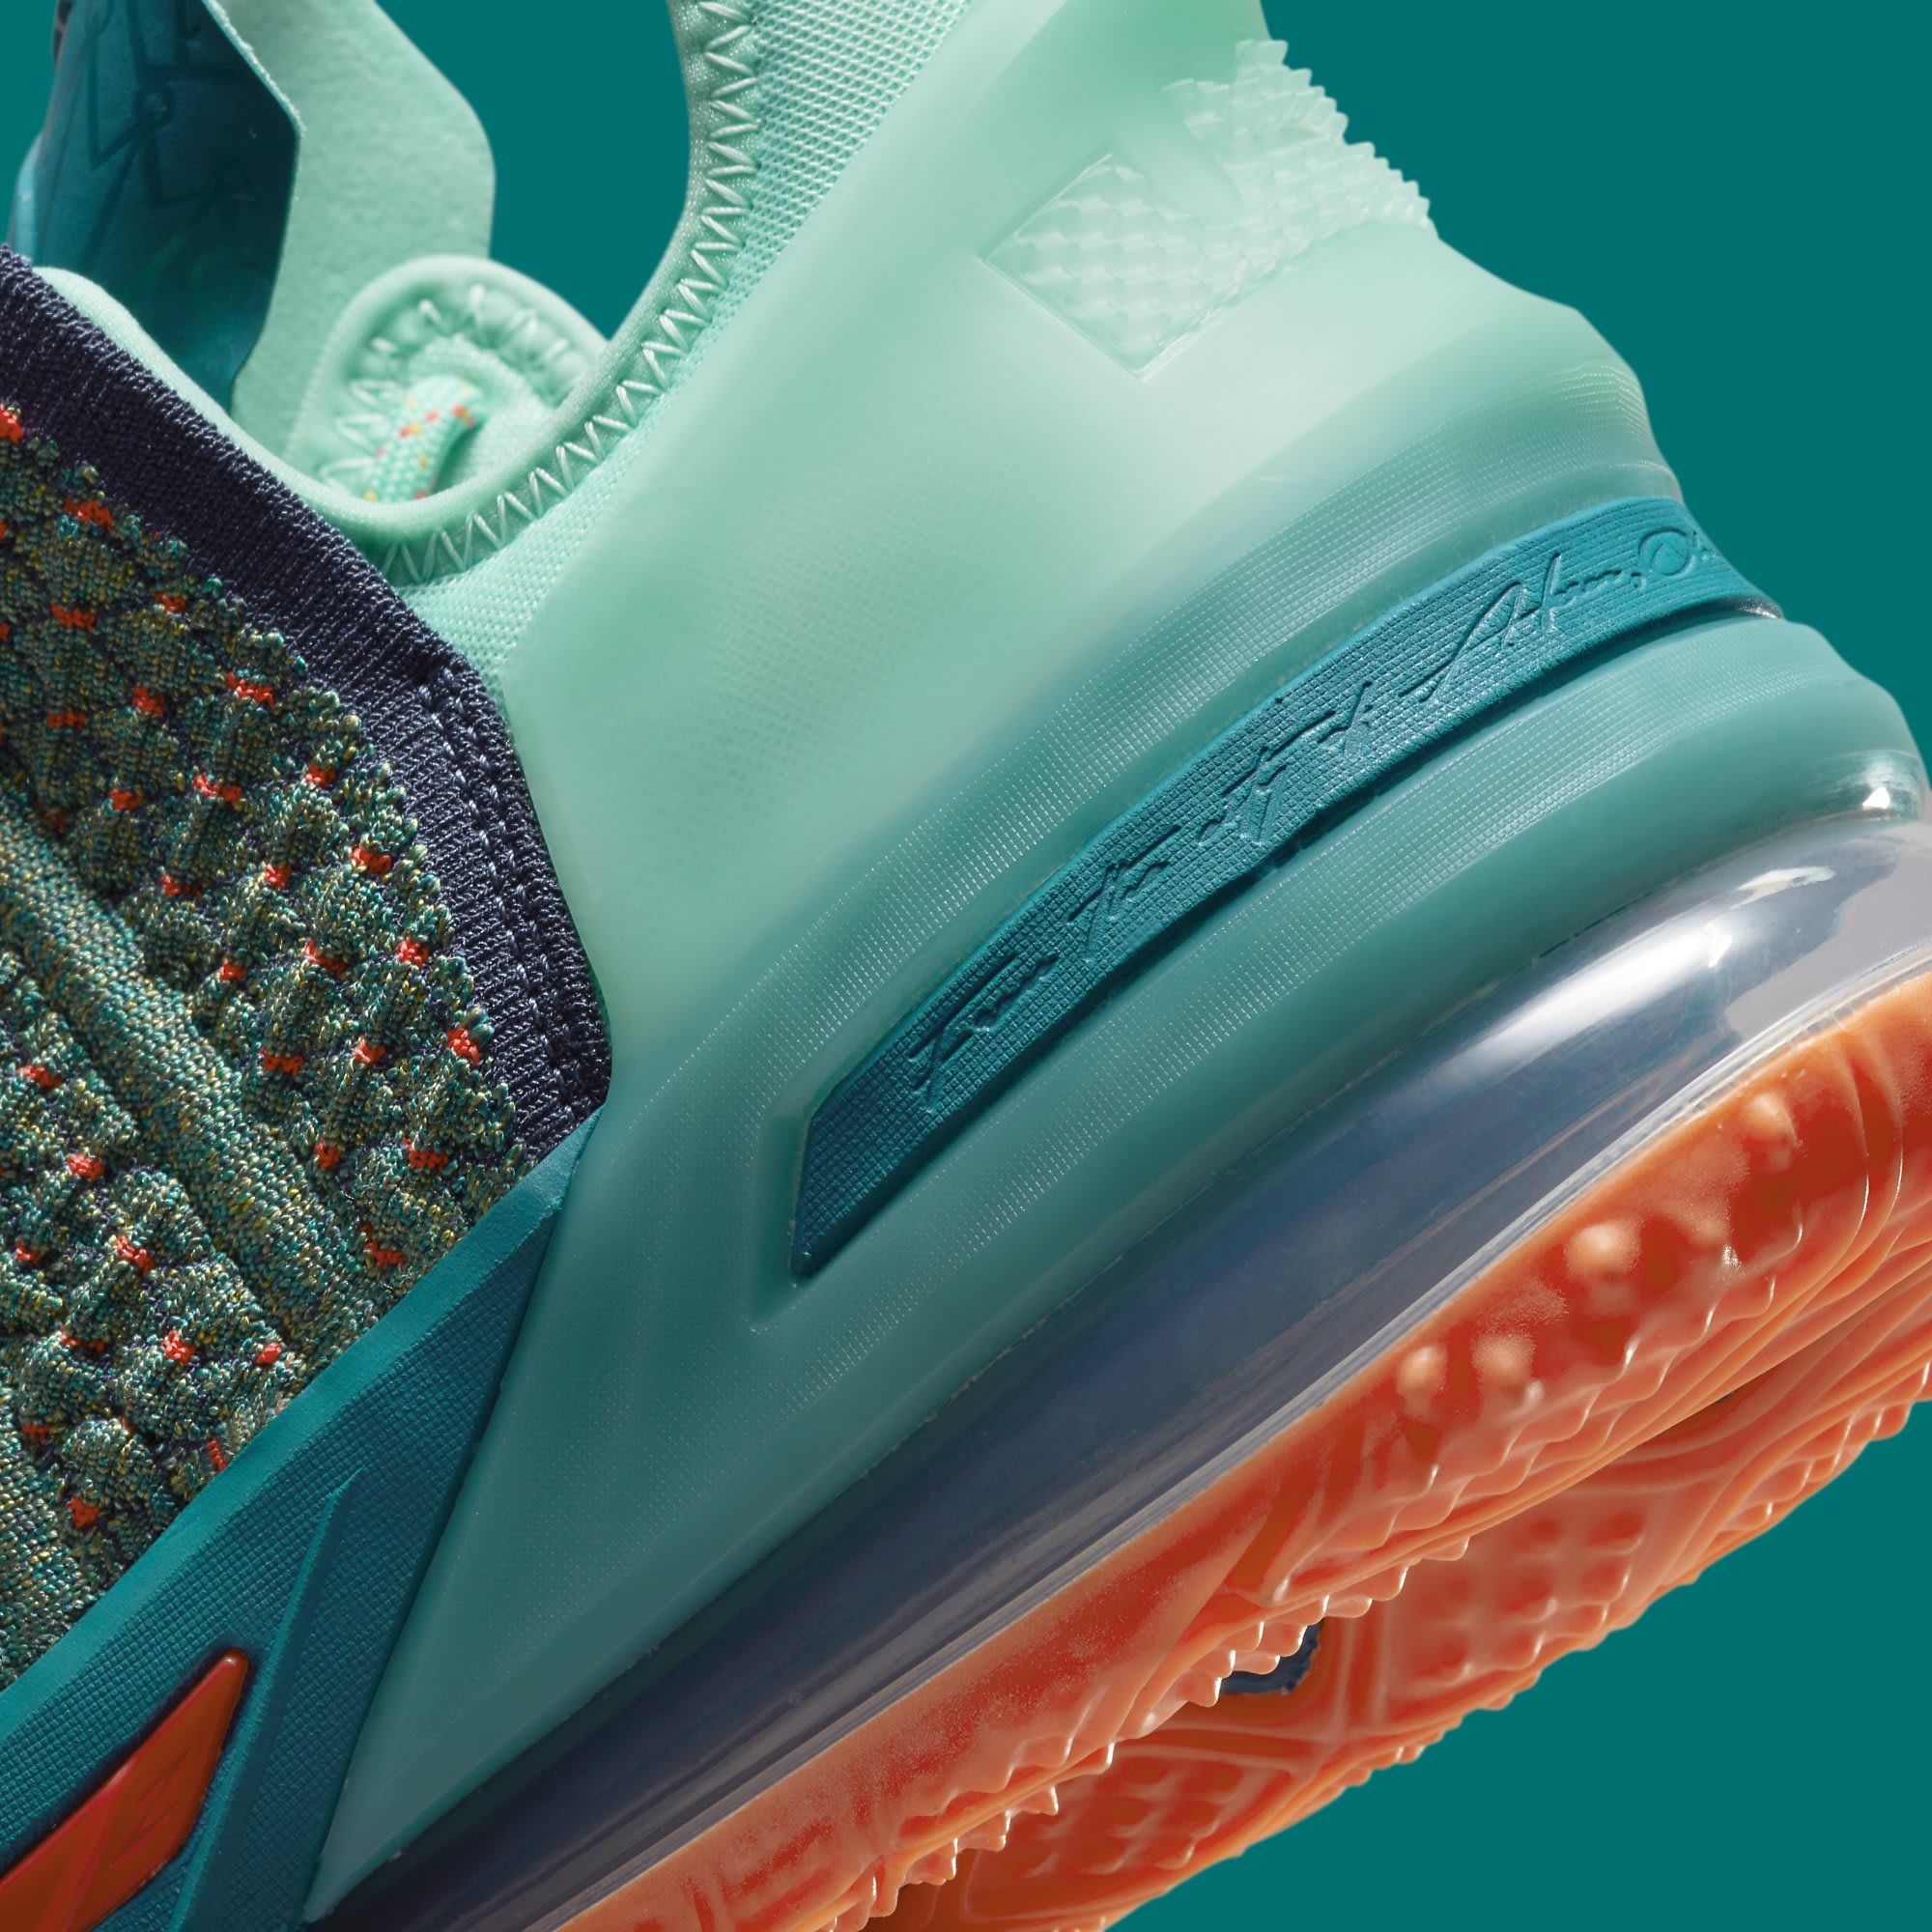 Nike LeBron 18 We Are Family Release Date CQ9283-300 Heel Detail